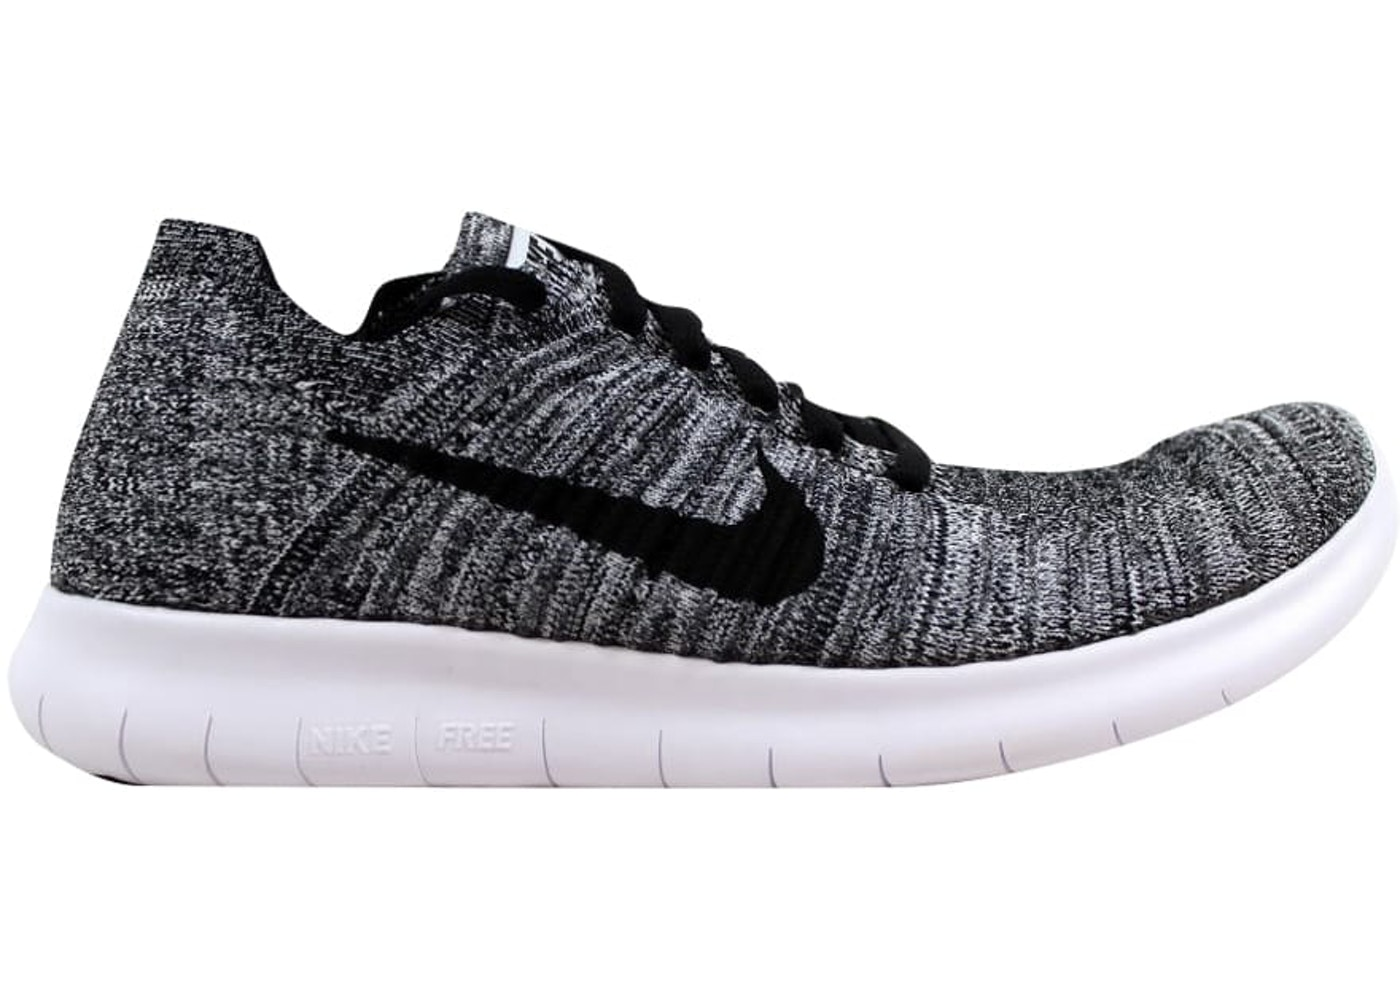 aff7ddb65e312 Sell. or Ask. Size  6.5. View All Bids. Nike Free RN Flyknit ...